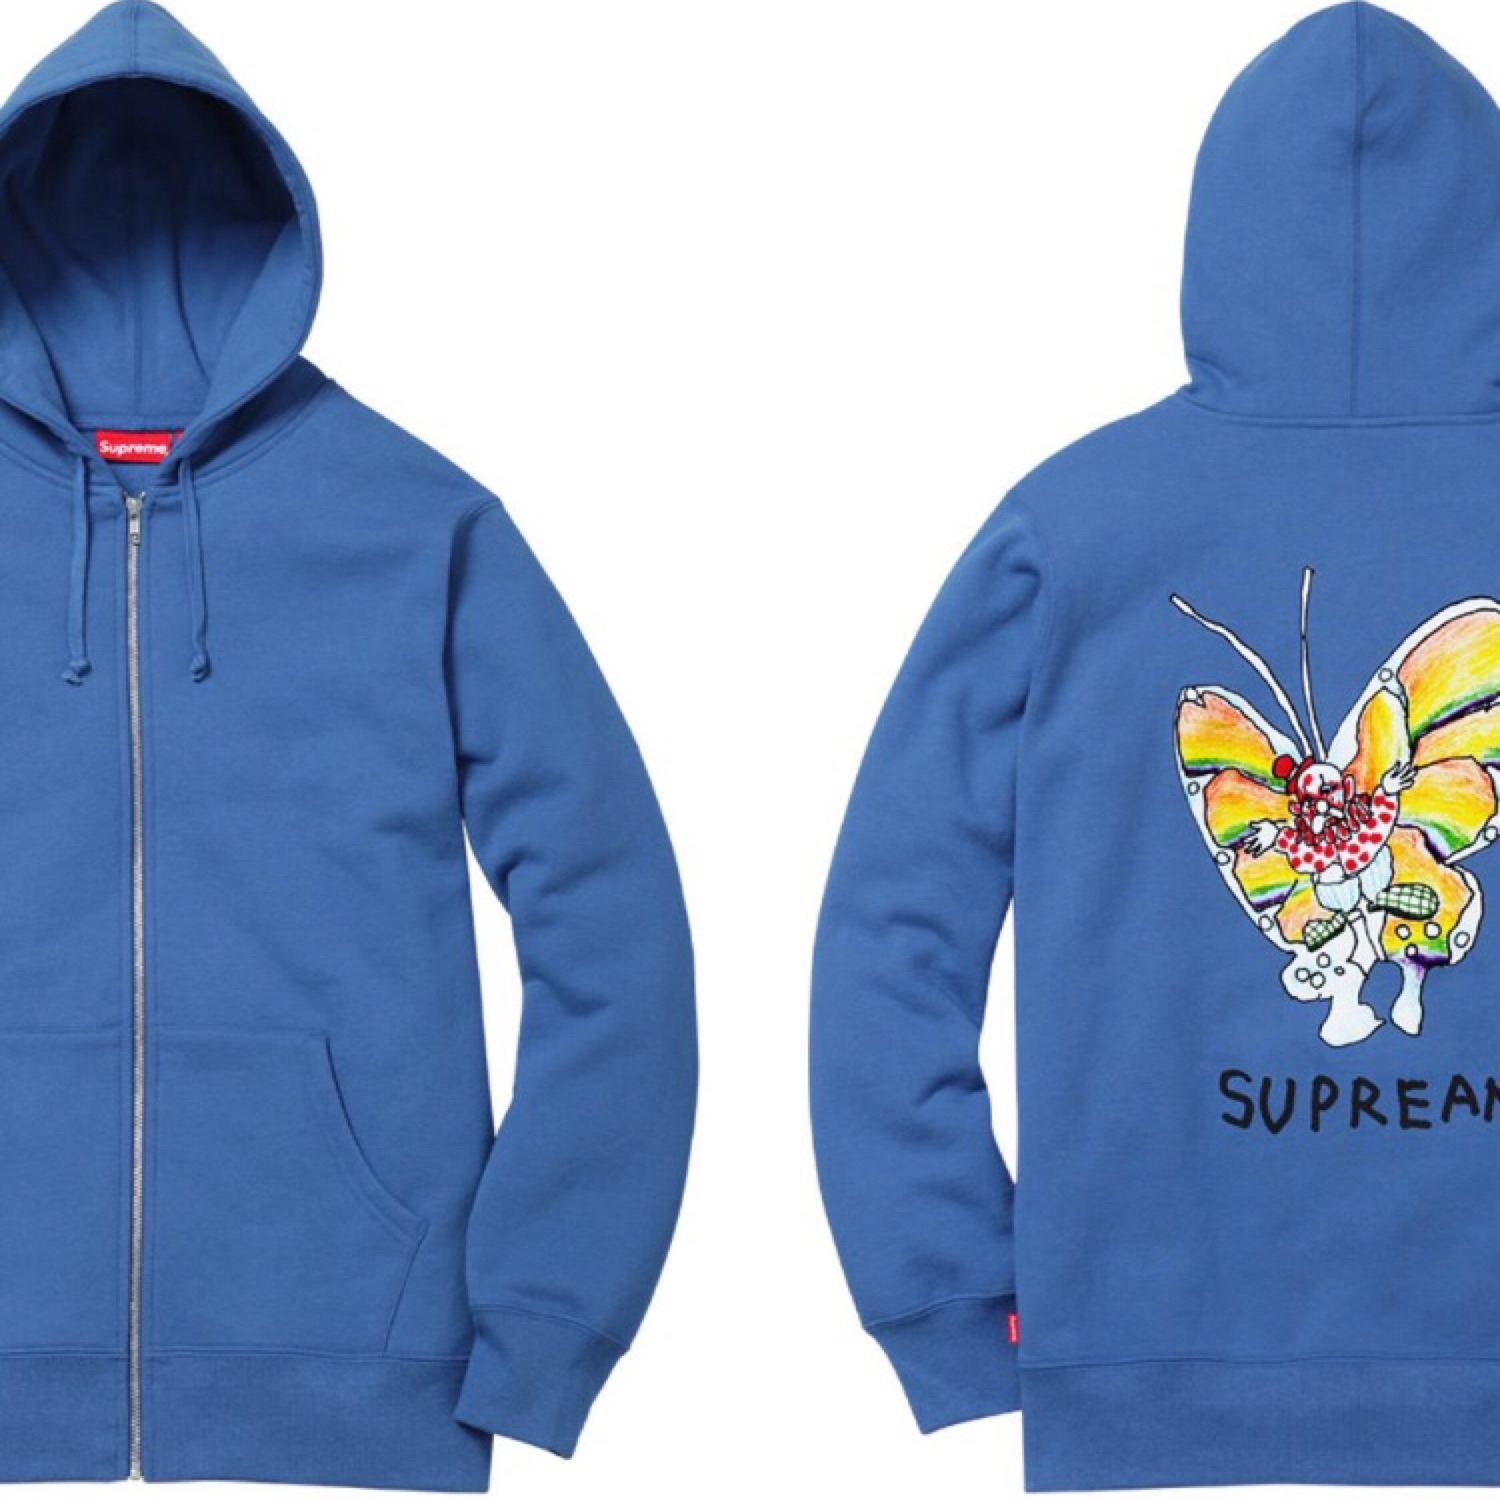 Supreme X Mark Gonz Zip Up Blue Hoodie.